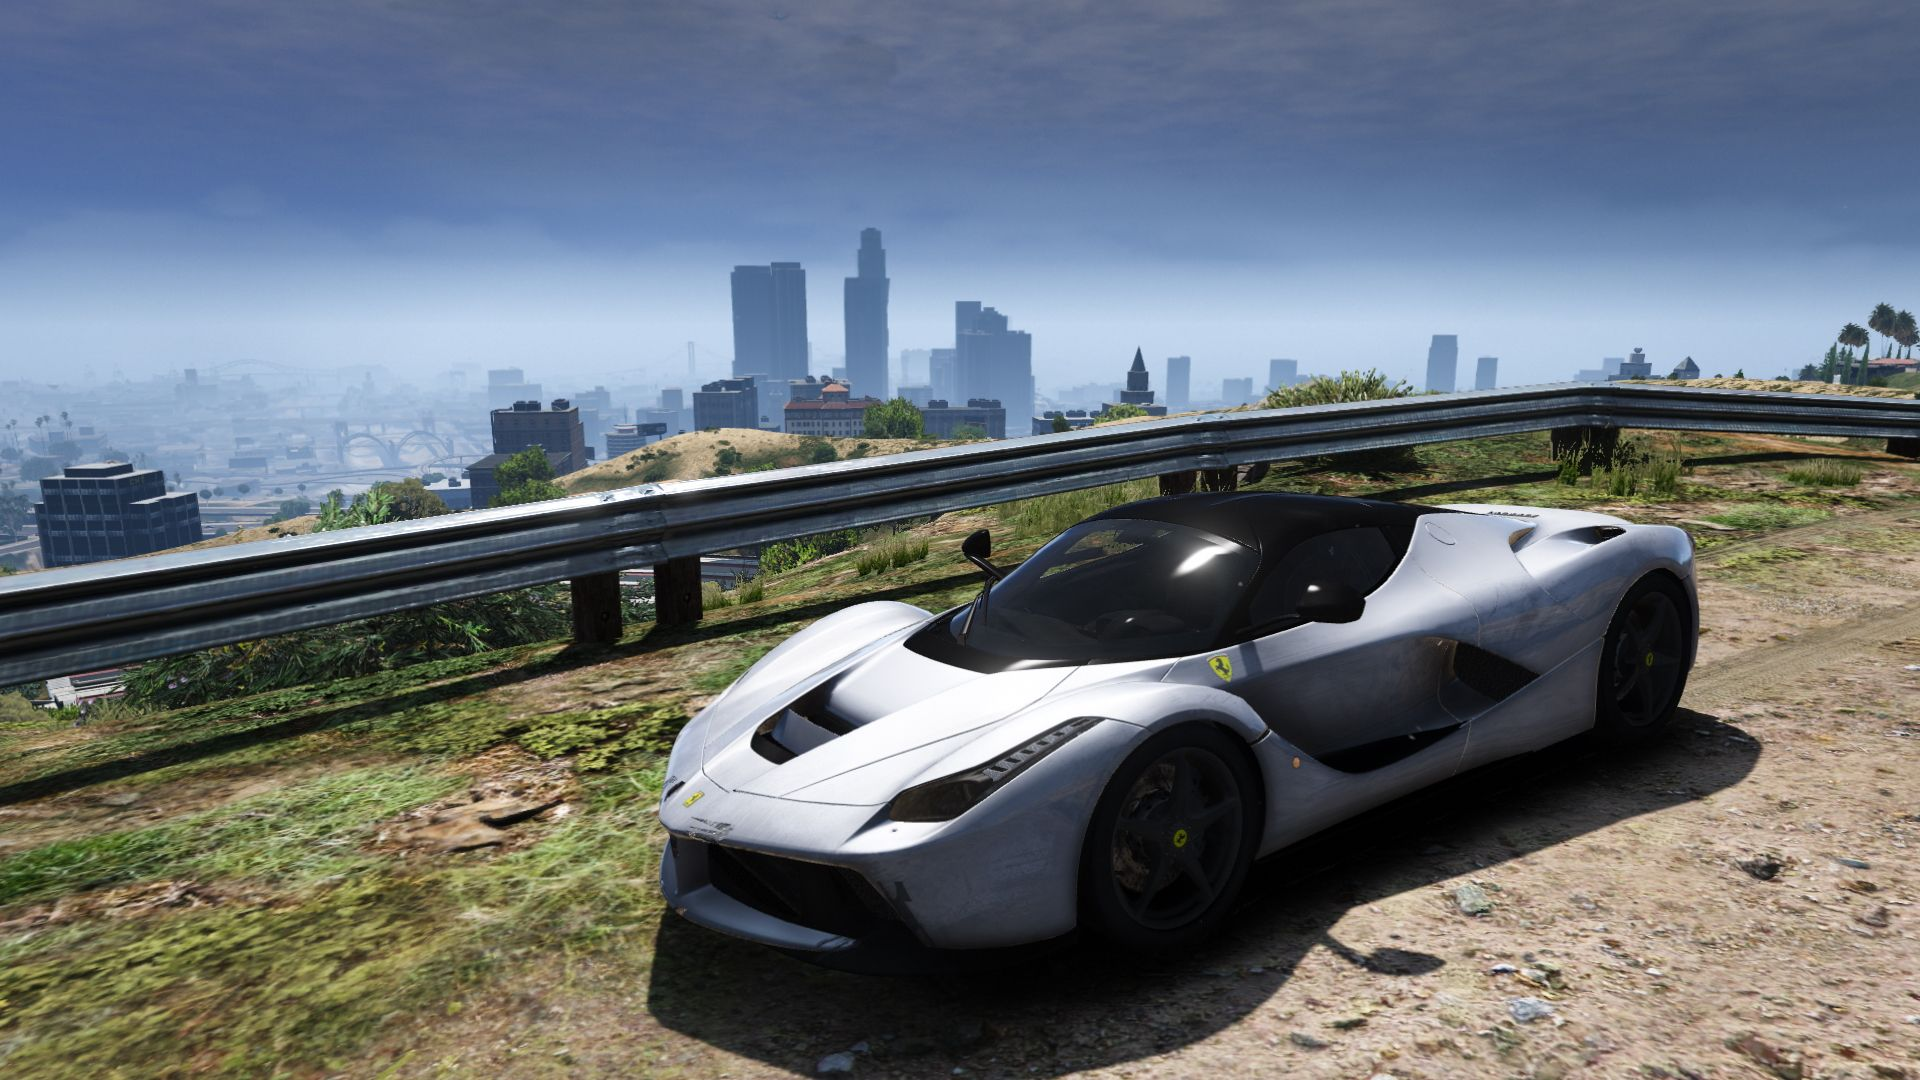 Gta V Beautification Project Version 2 75 Ready For Download Full Modding Guide No Experience Needed Ne Gta Cars Grand Theft Auto Games Grand Theft Auto